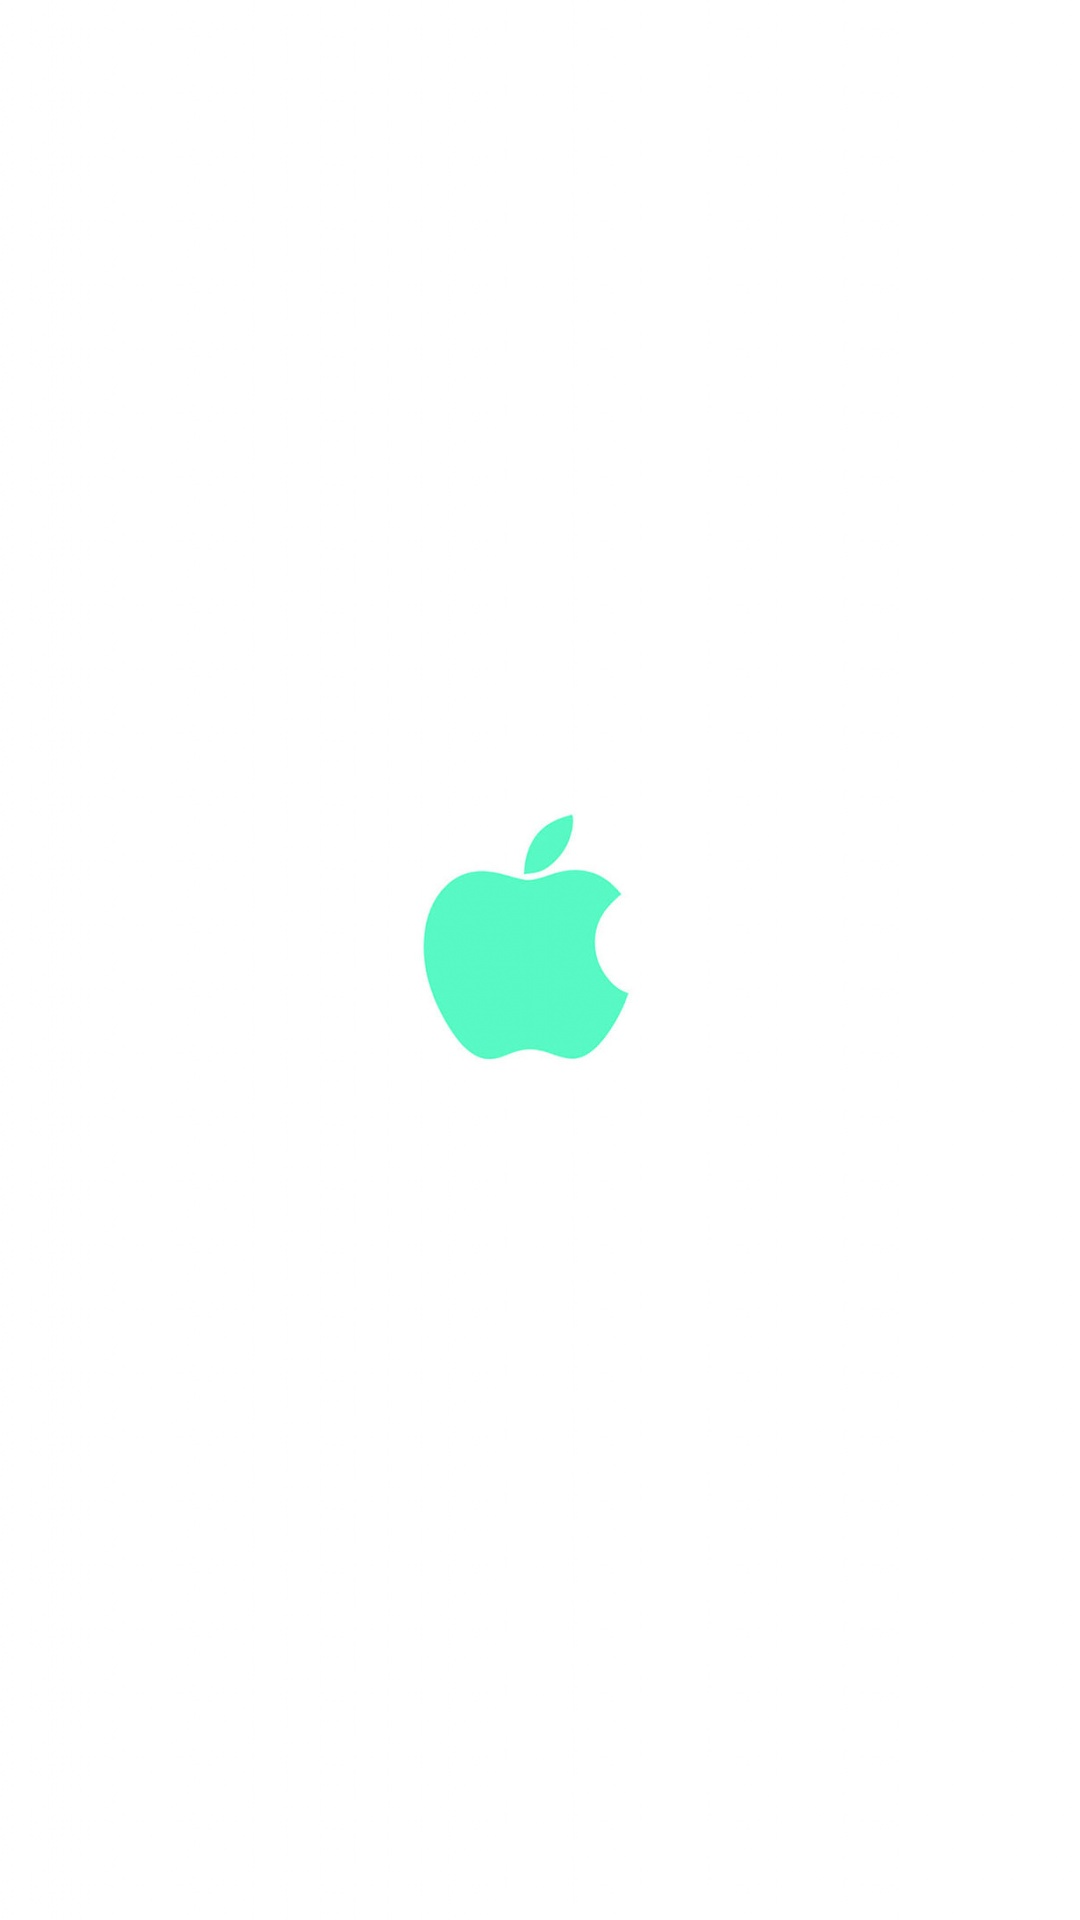 Best-of-Macintosh-Apple-Logo-Tap-image-for-more-mobile-for-iPhone-wallpaper-wp3403192